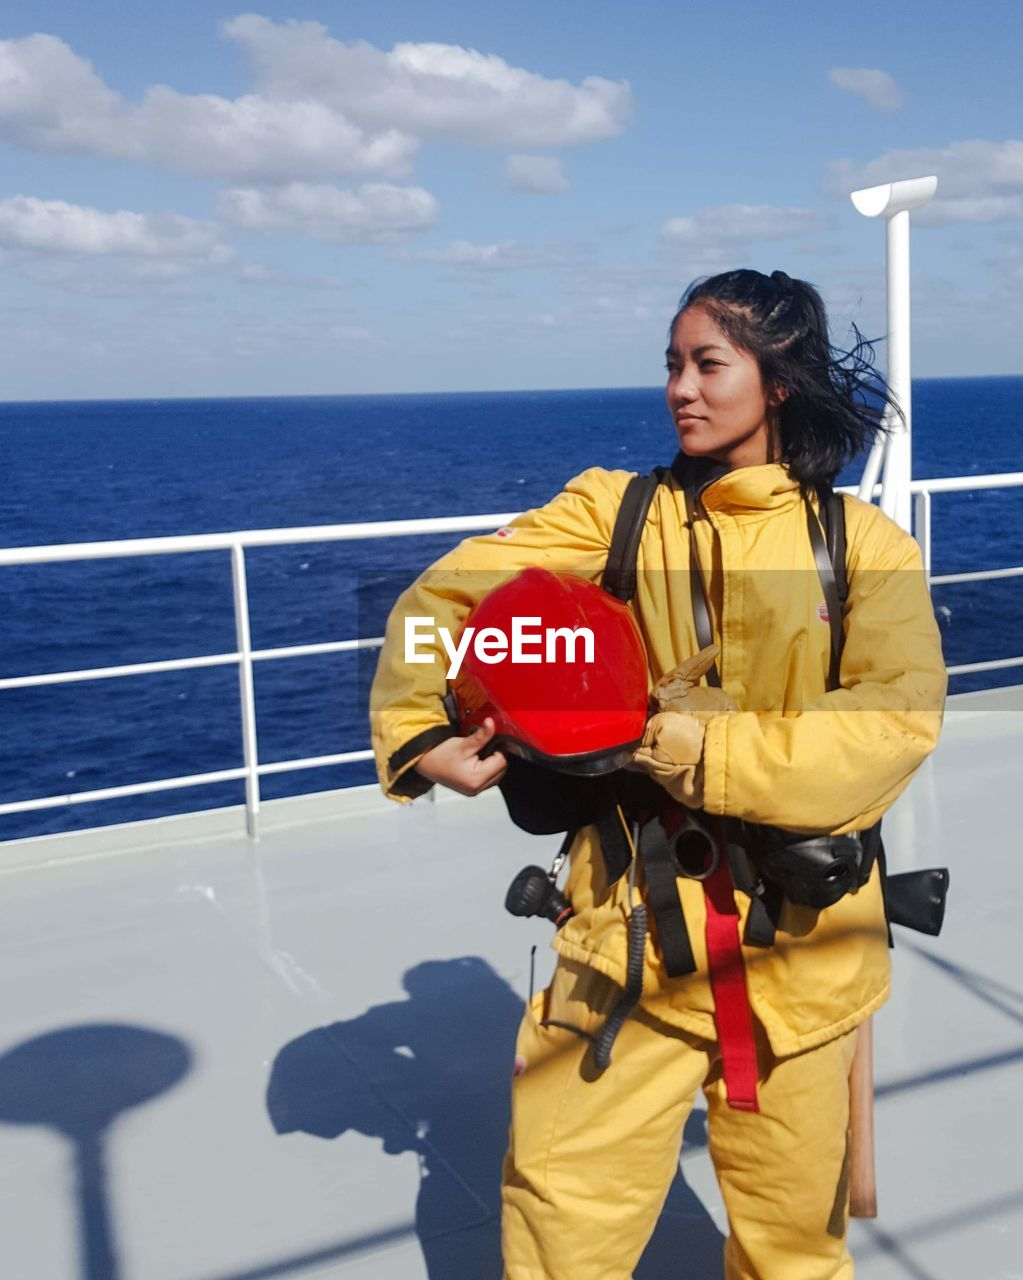 Woman in uniform standing on boat at sea against sky